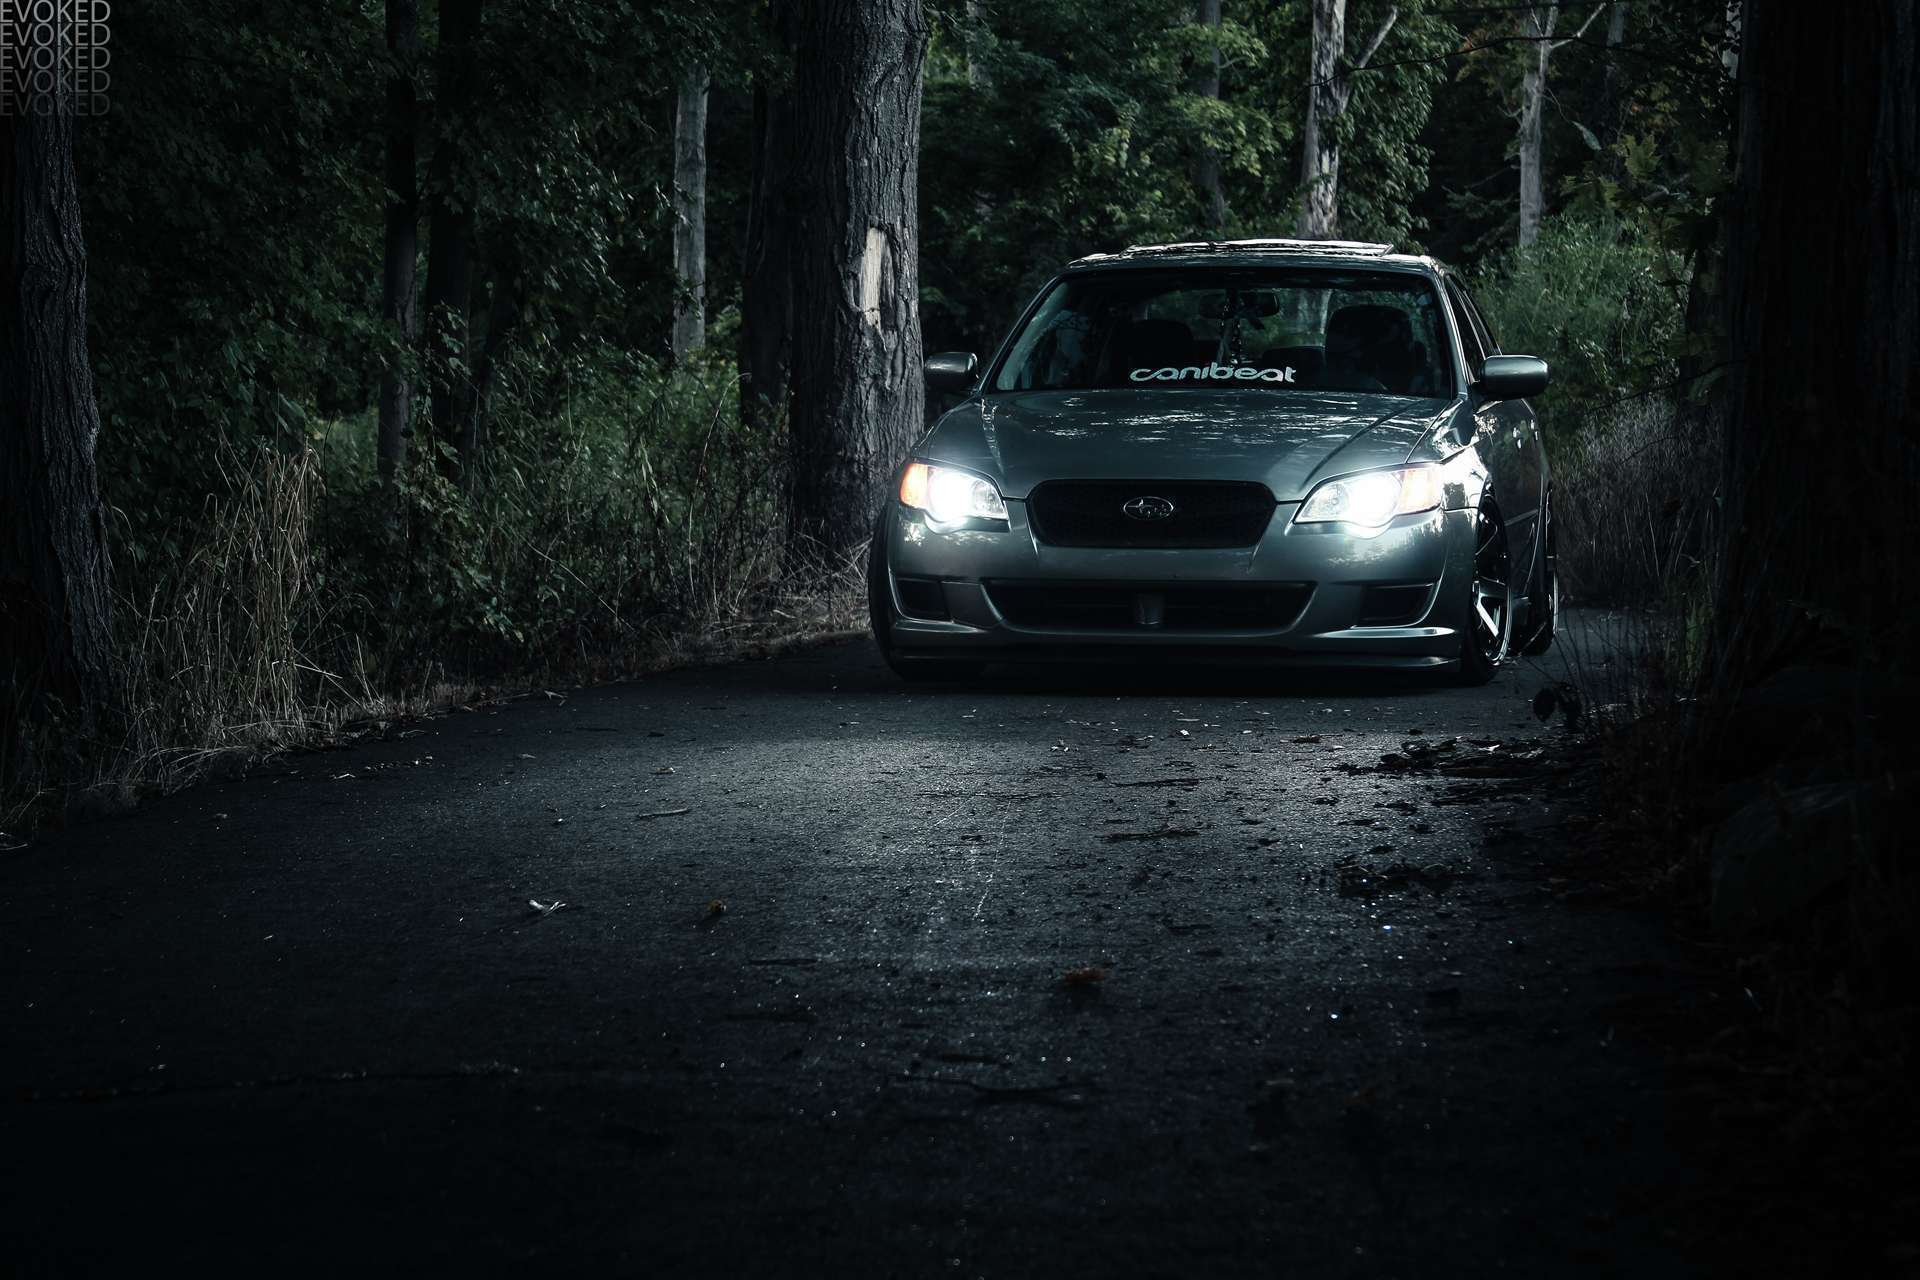 Subaru Legacy Wallpapers Hd Car Wallpapers 1920x1280